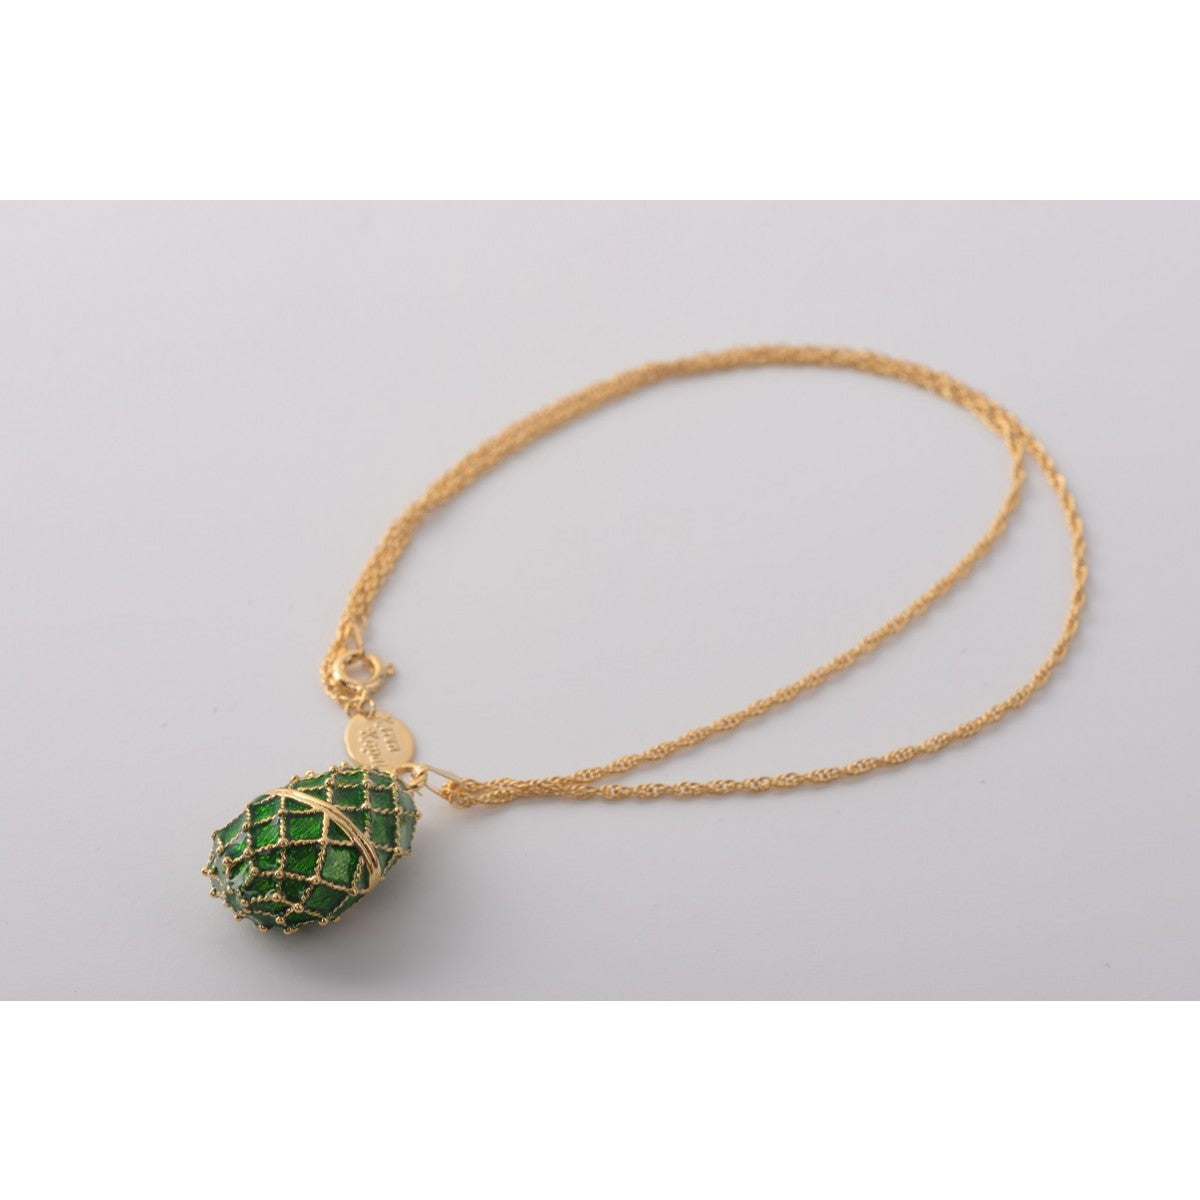 Dark Green Faberge  Egg Pendant Necklace